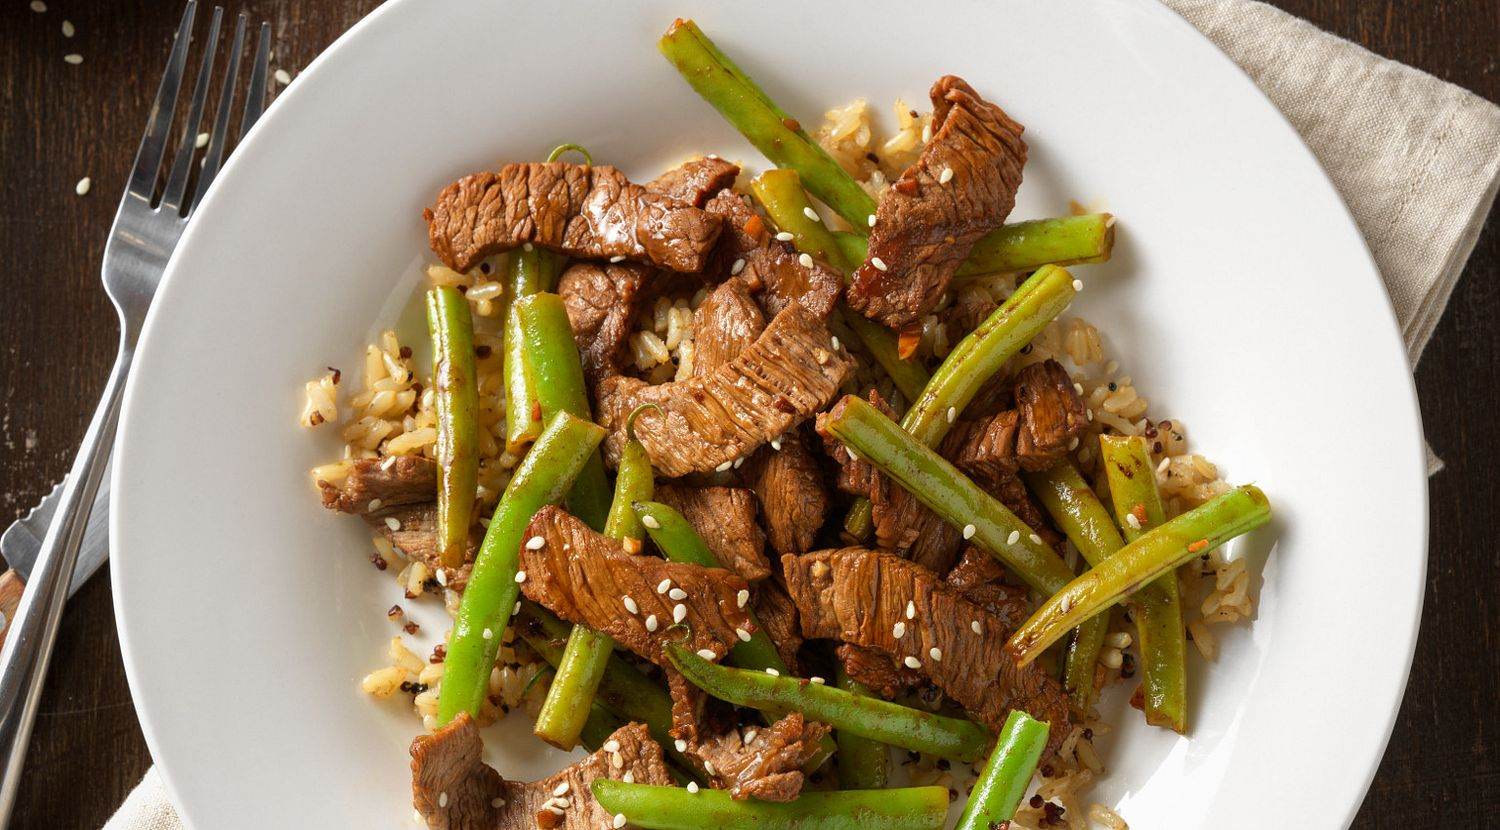 Beef Stir-Fry with Green Beans